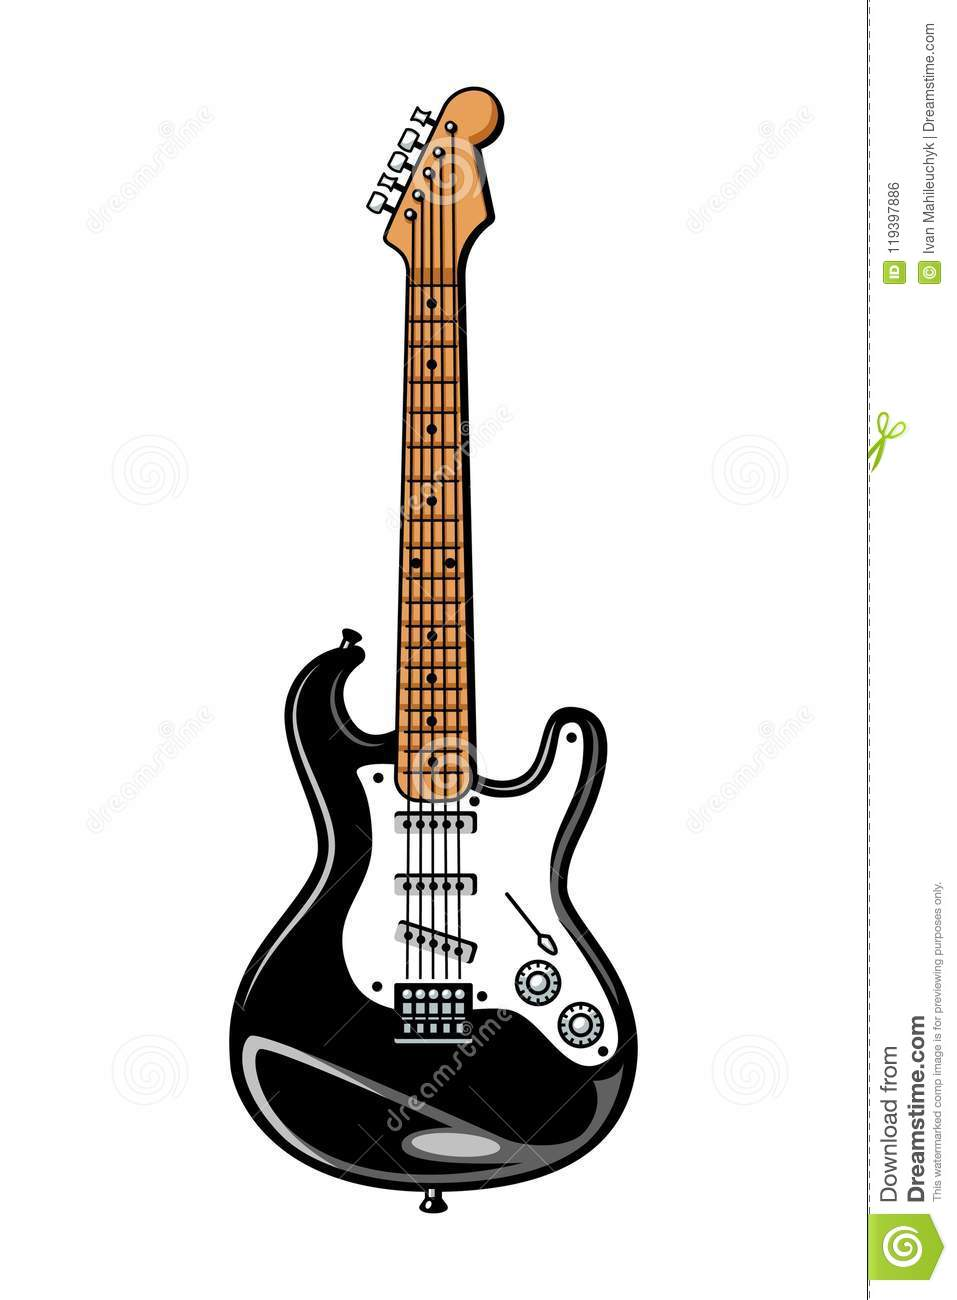 vintage colorful electric guitar template stock vector